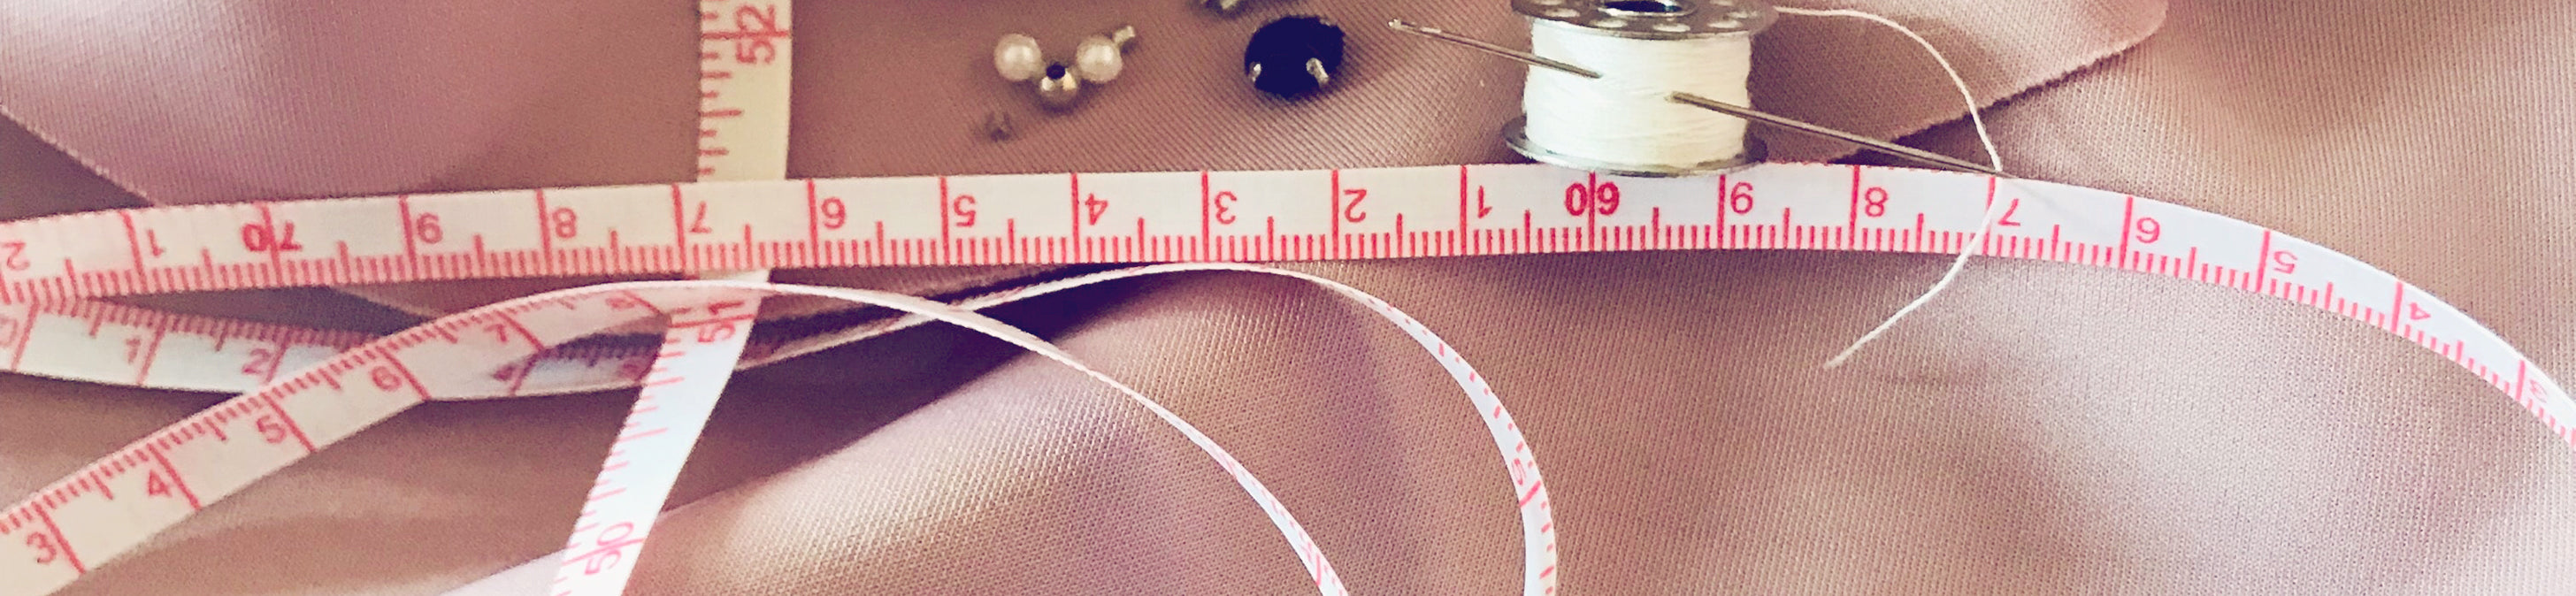 Size_Chart_How_to_Measure_Measuring_Guide_Couture_Dress_Miele_Moda_Boutique